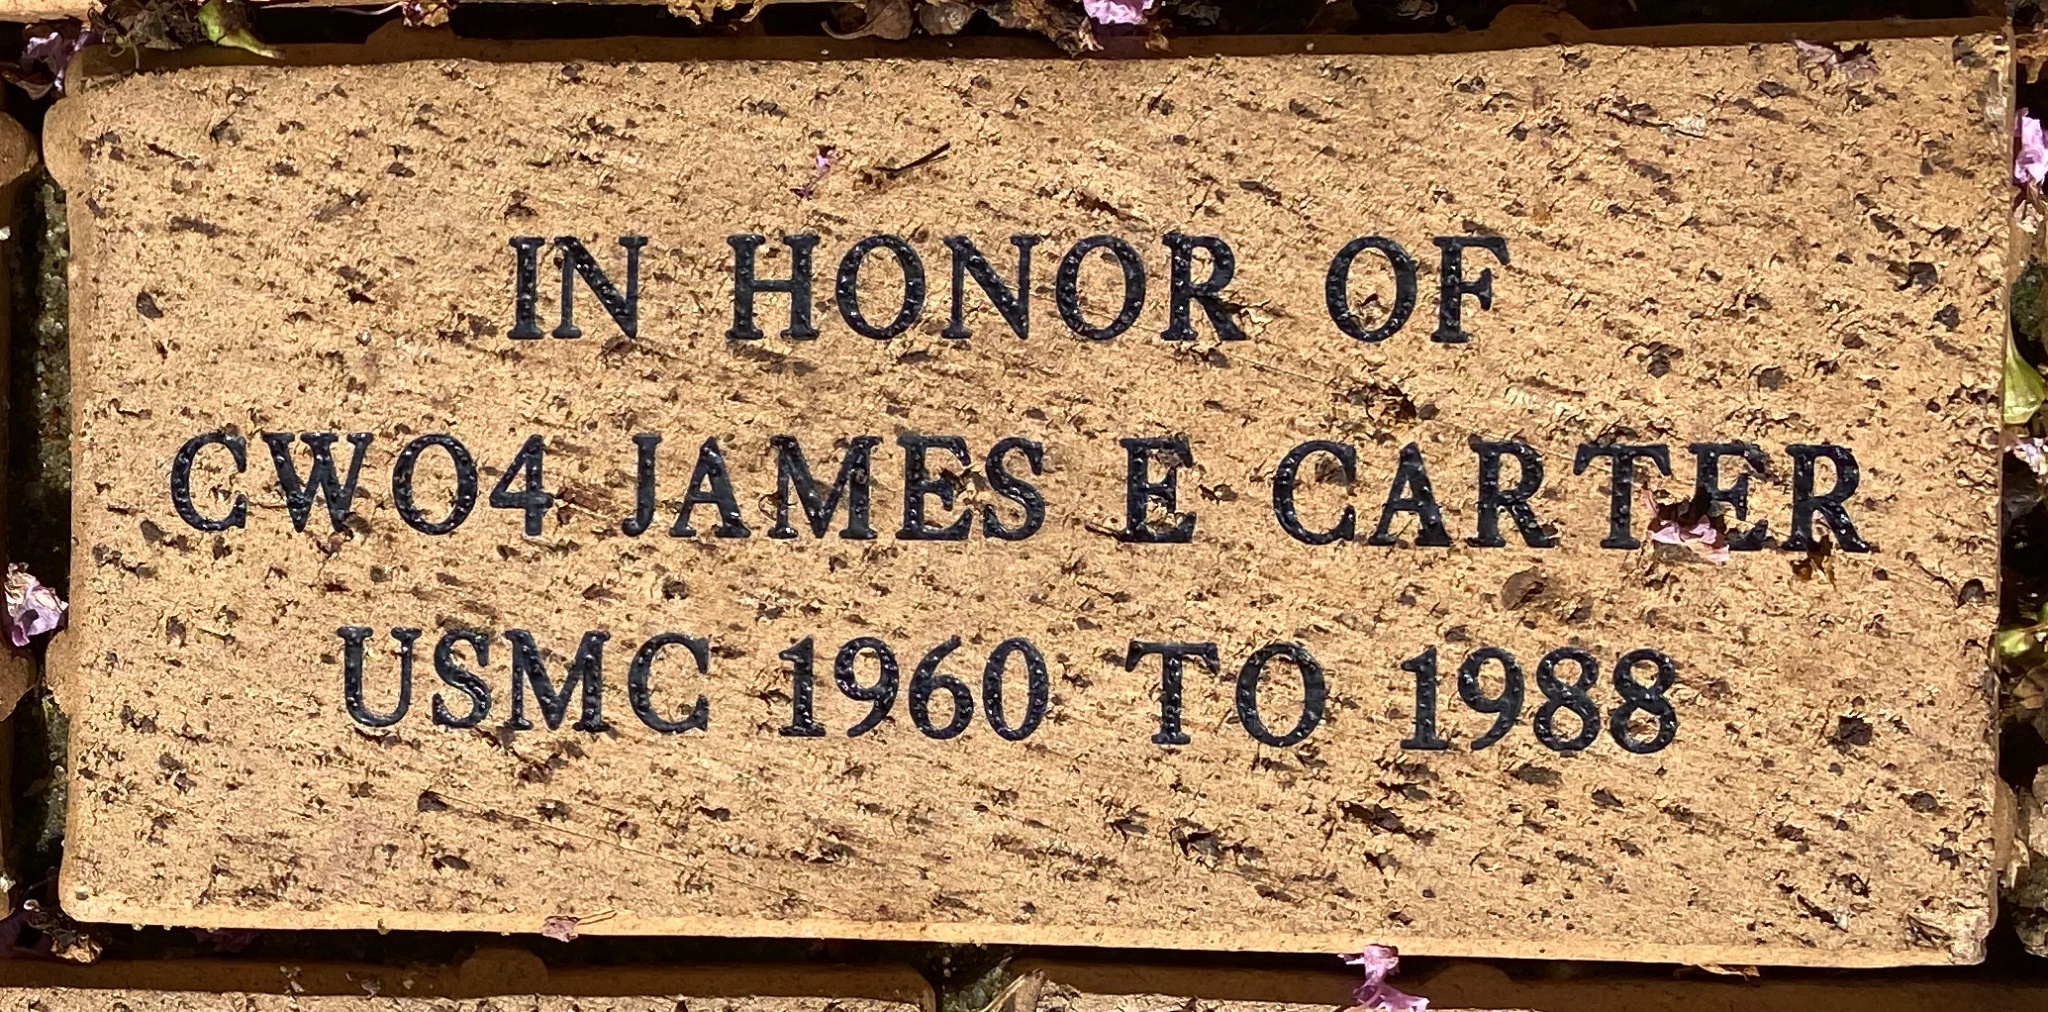 IN HONOR OF  CWO4 JAMES E CARTER USMC 1960 TO 1988